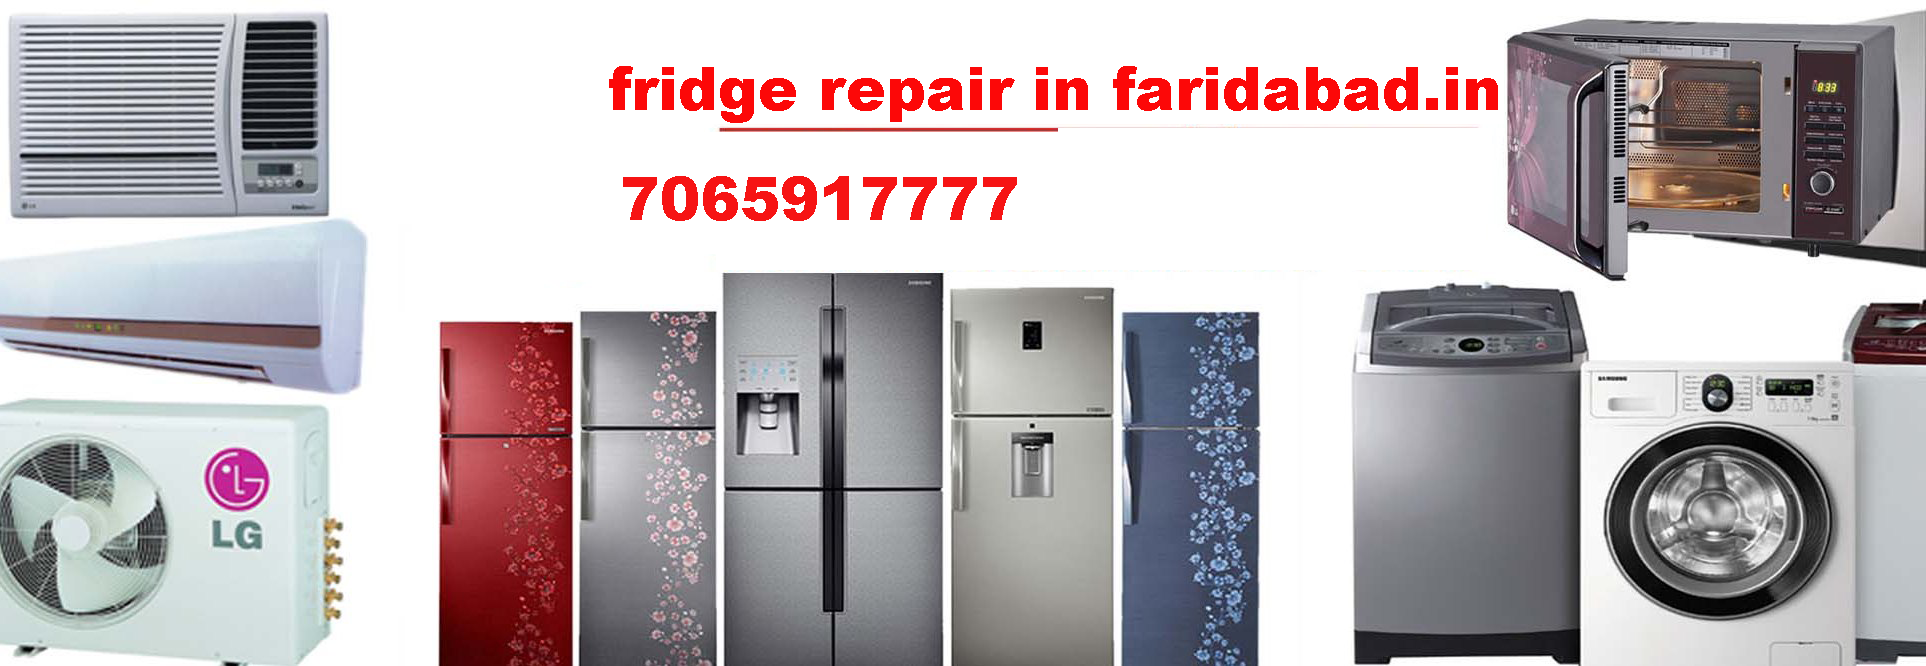 Fridge Repair In Faridabad Home Liance Washing Machine Service Refrigerator Microwave